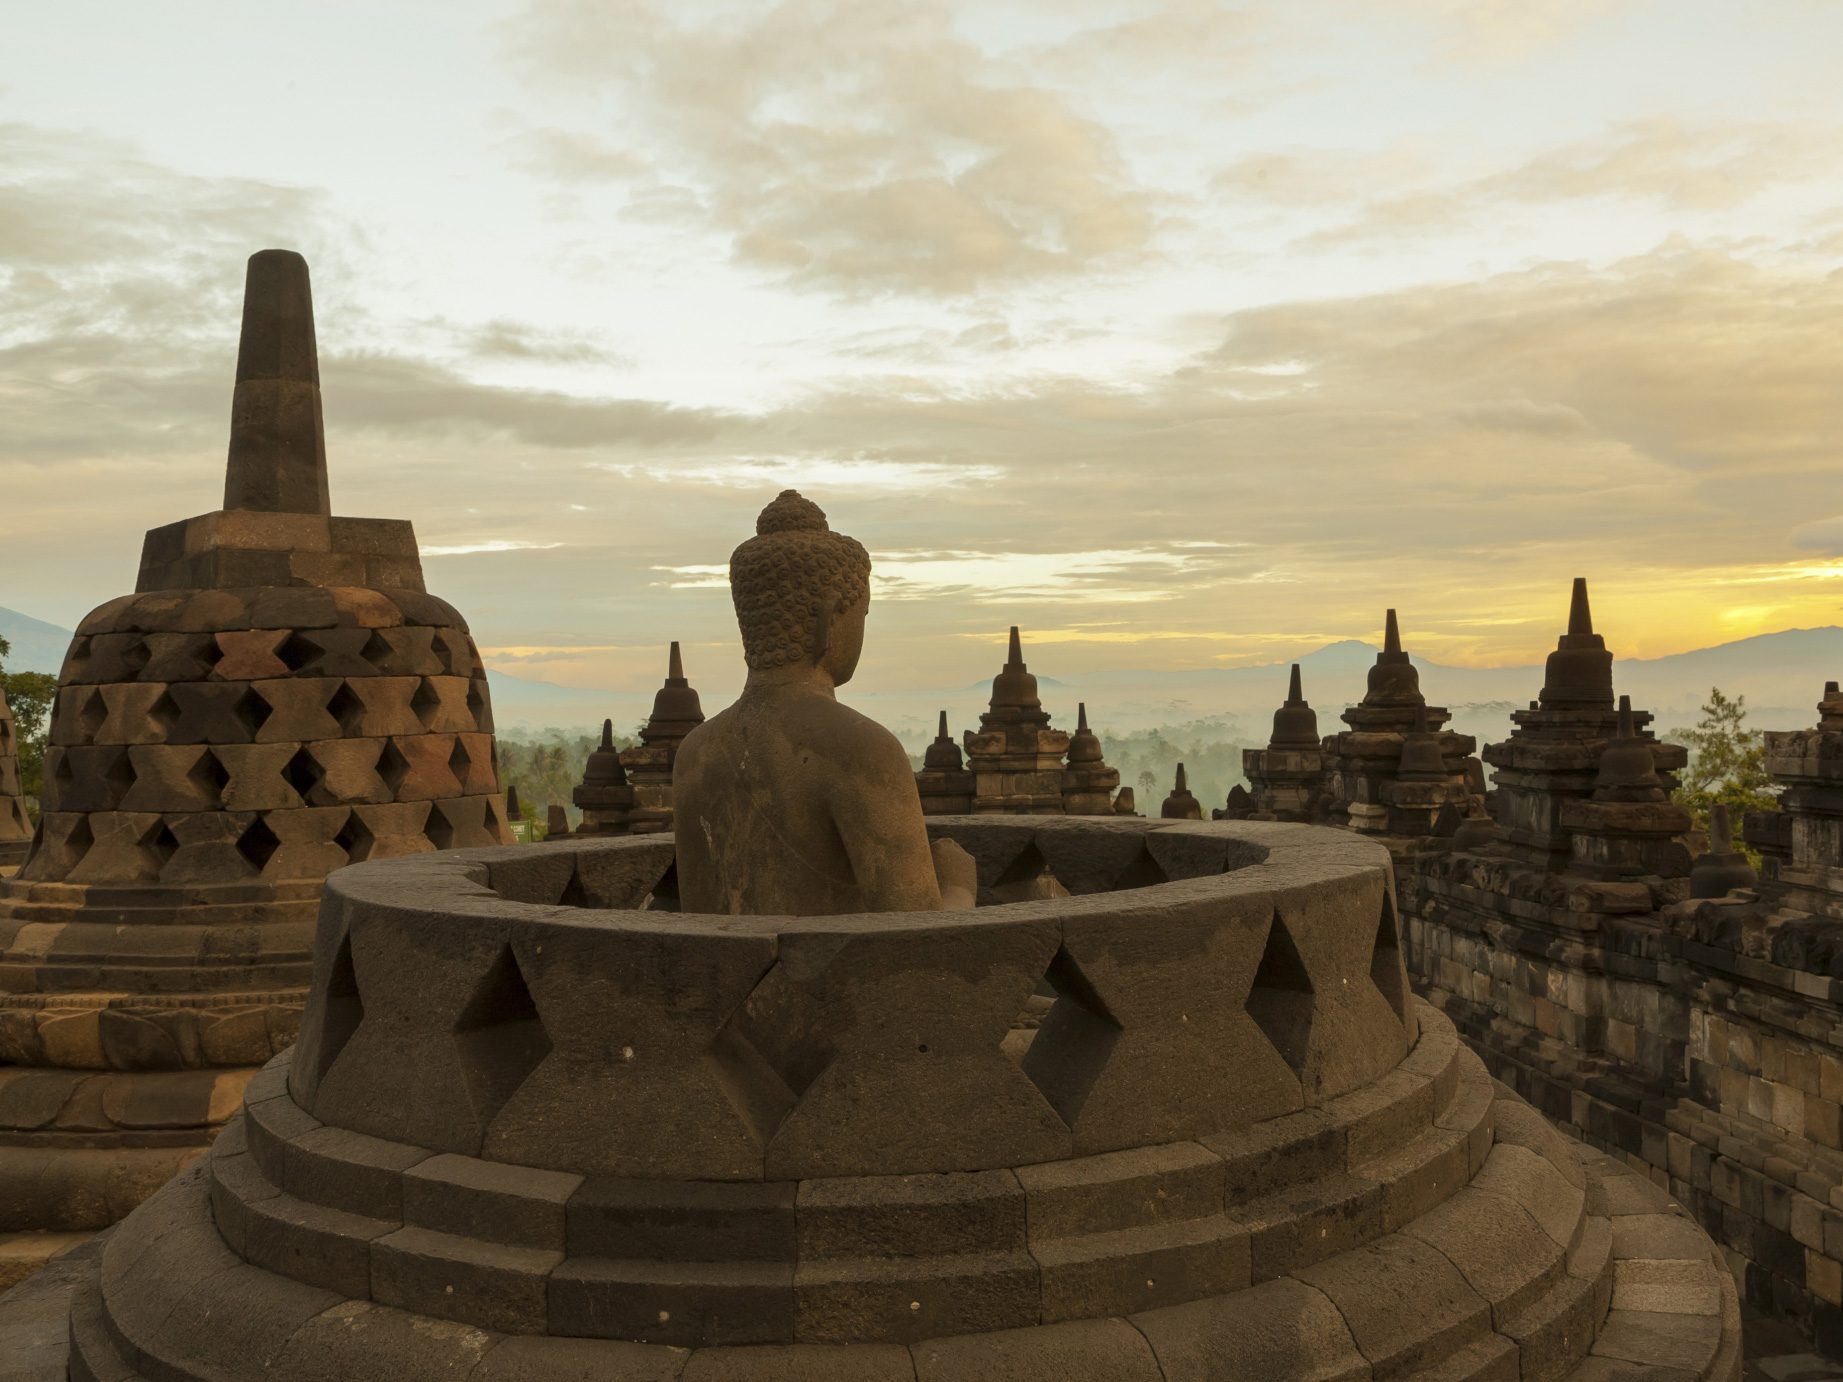 Construction Wonder of Antiquity: Borobudur - Indonesia